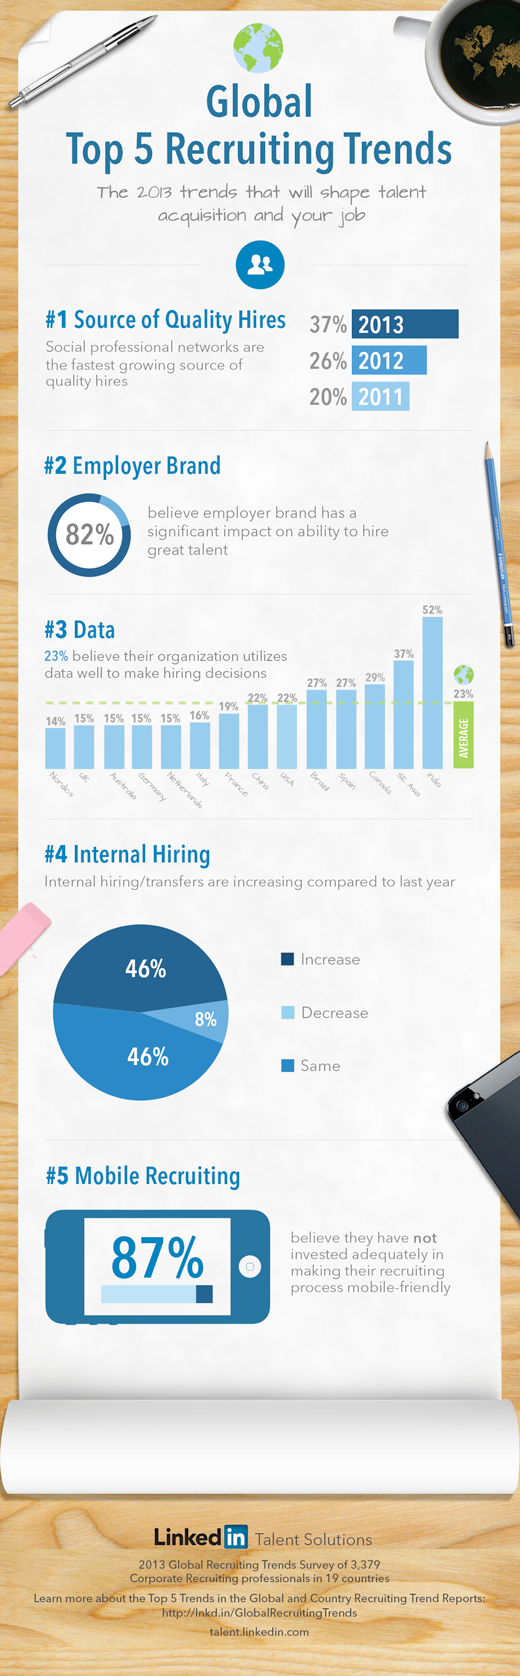 Recruiting Trends Infographic 2013